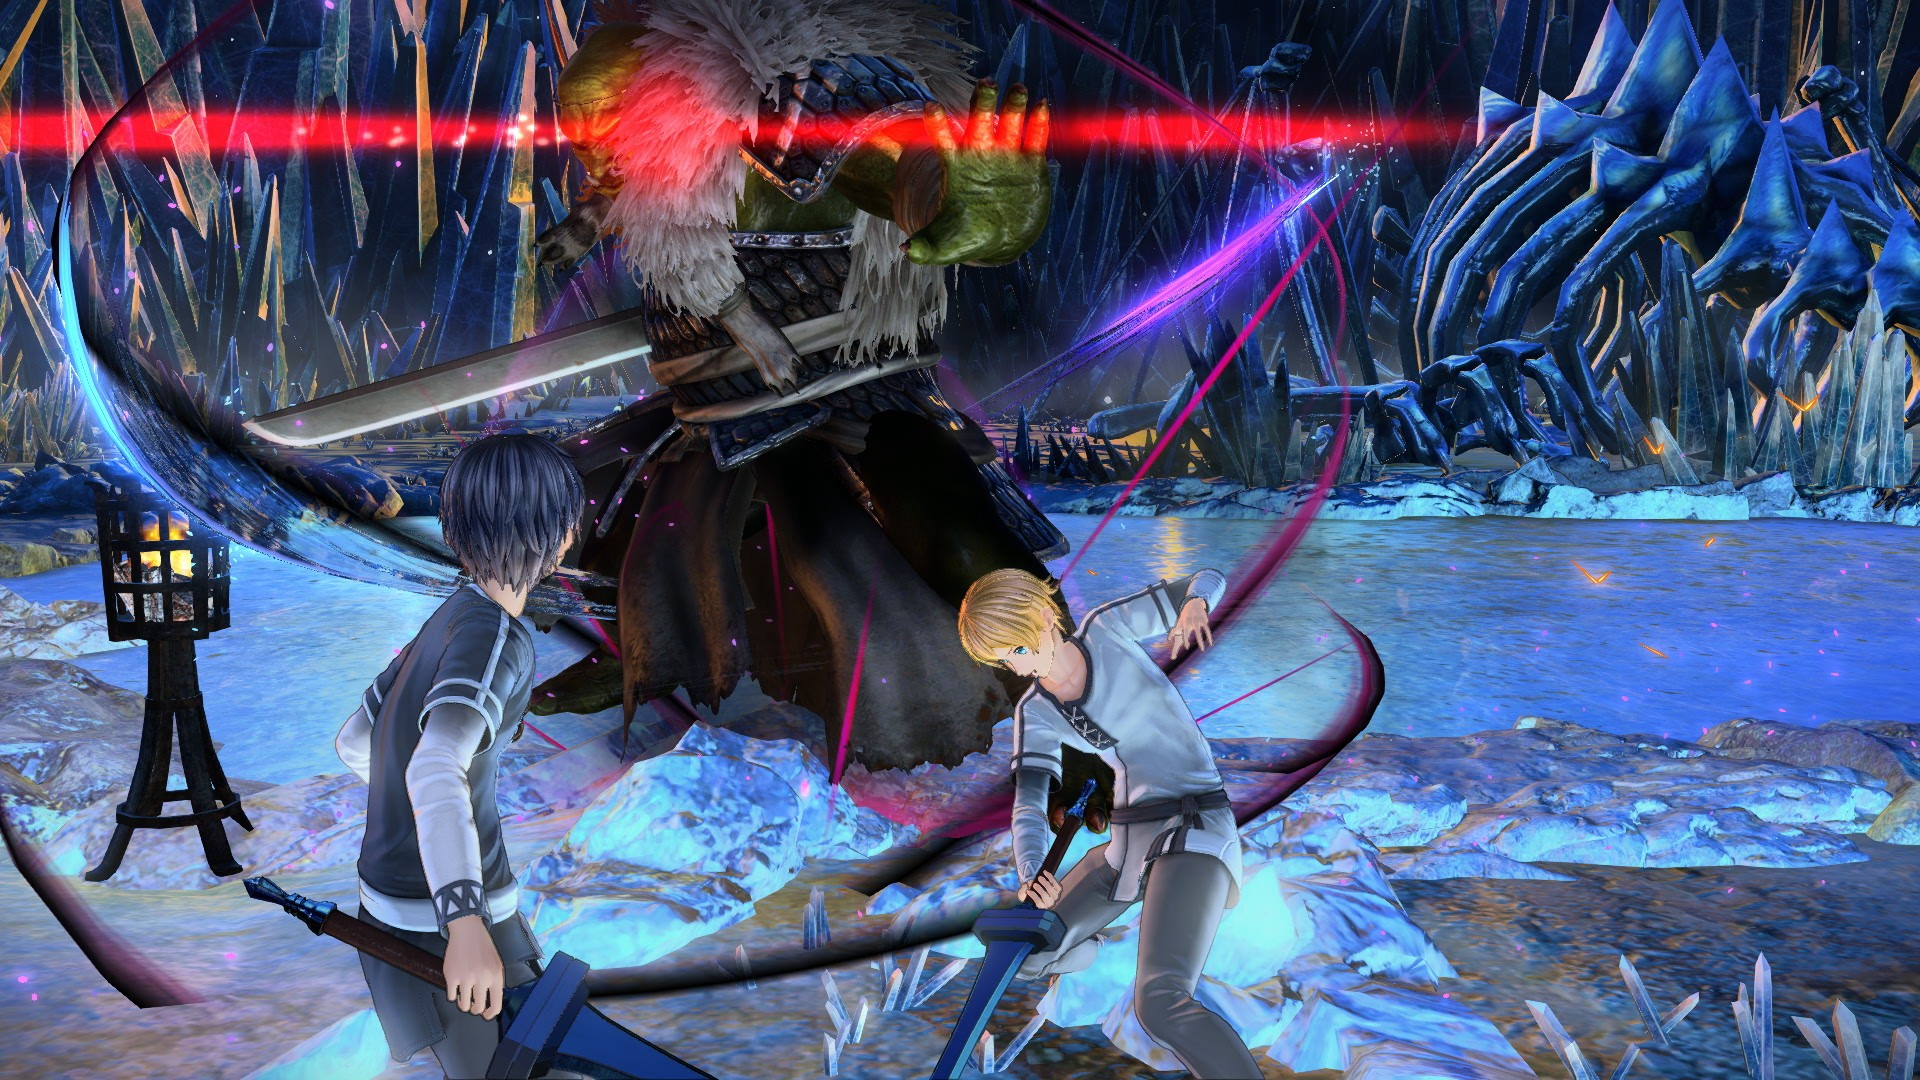 Sword Art Online: Alicization Lycoris, SAO: Alicization Lycoris, Bandai Namco, japan release date, gameplay, us, north america, features, ps4, playstation 4, xbox one, new cutscenes, alice and asuna first encounter, Eugeo's restraint